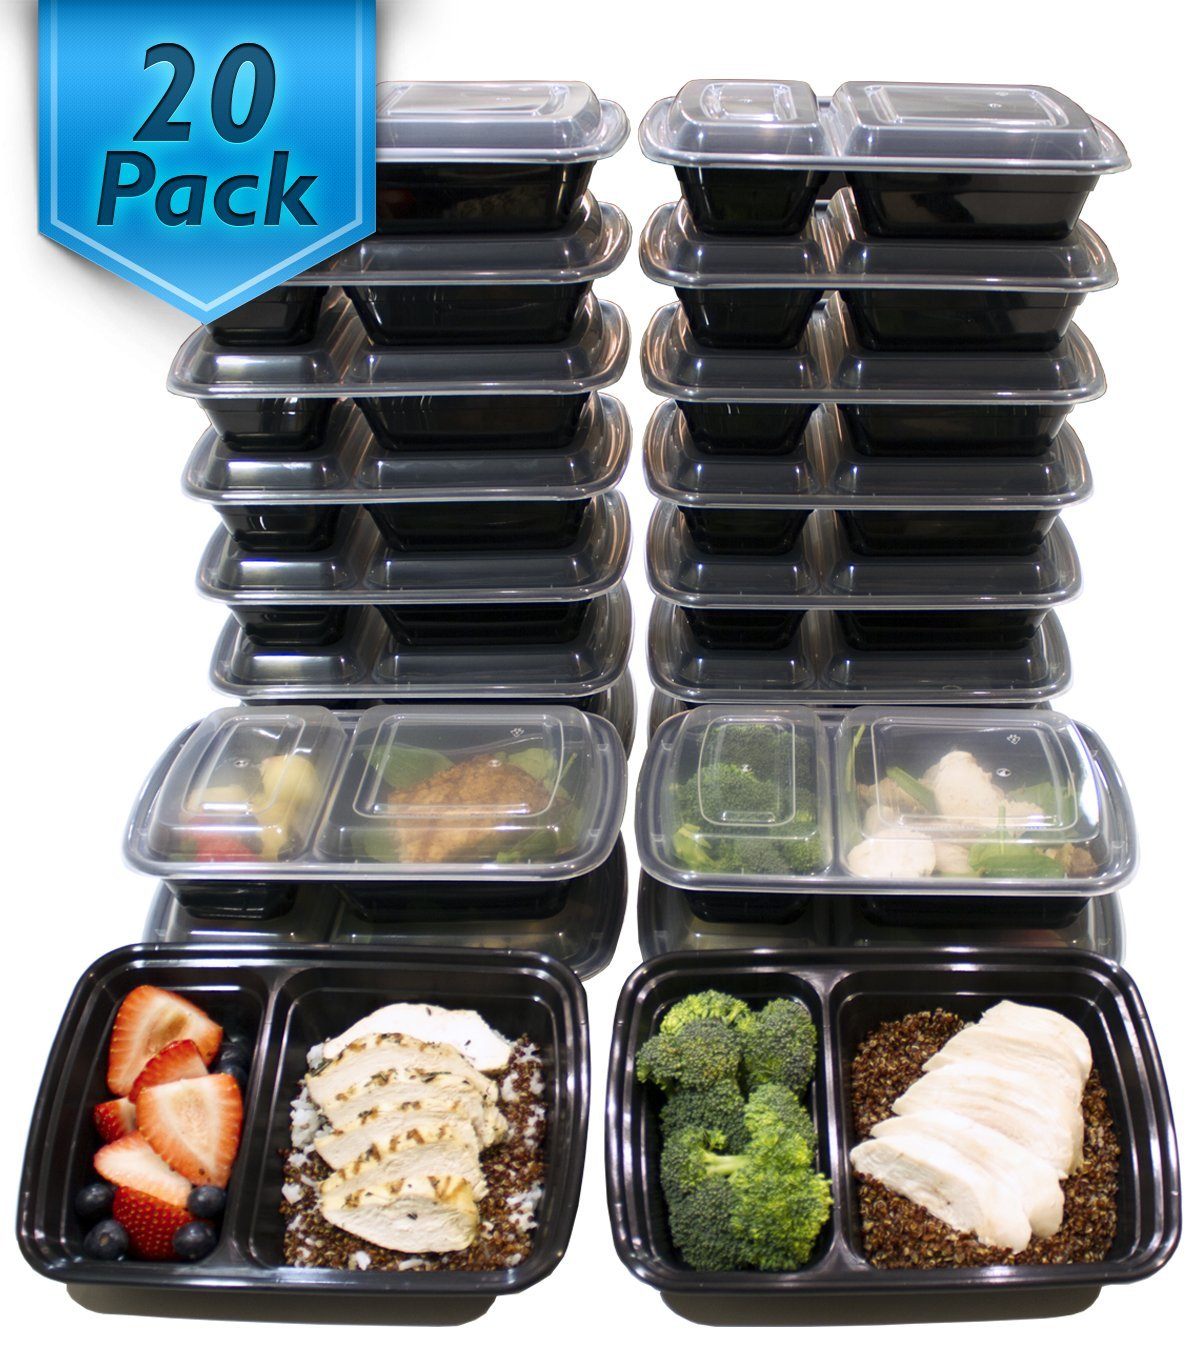 [20 Pack] Misc Home 32 Oz. 2 Compartment Meal Prep Containers BPA Free Reusable Food Storage Containers... by Misc Home Inc.